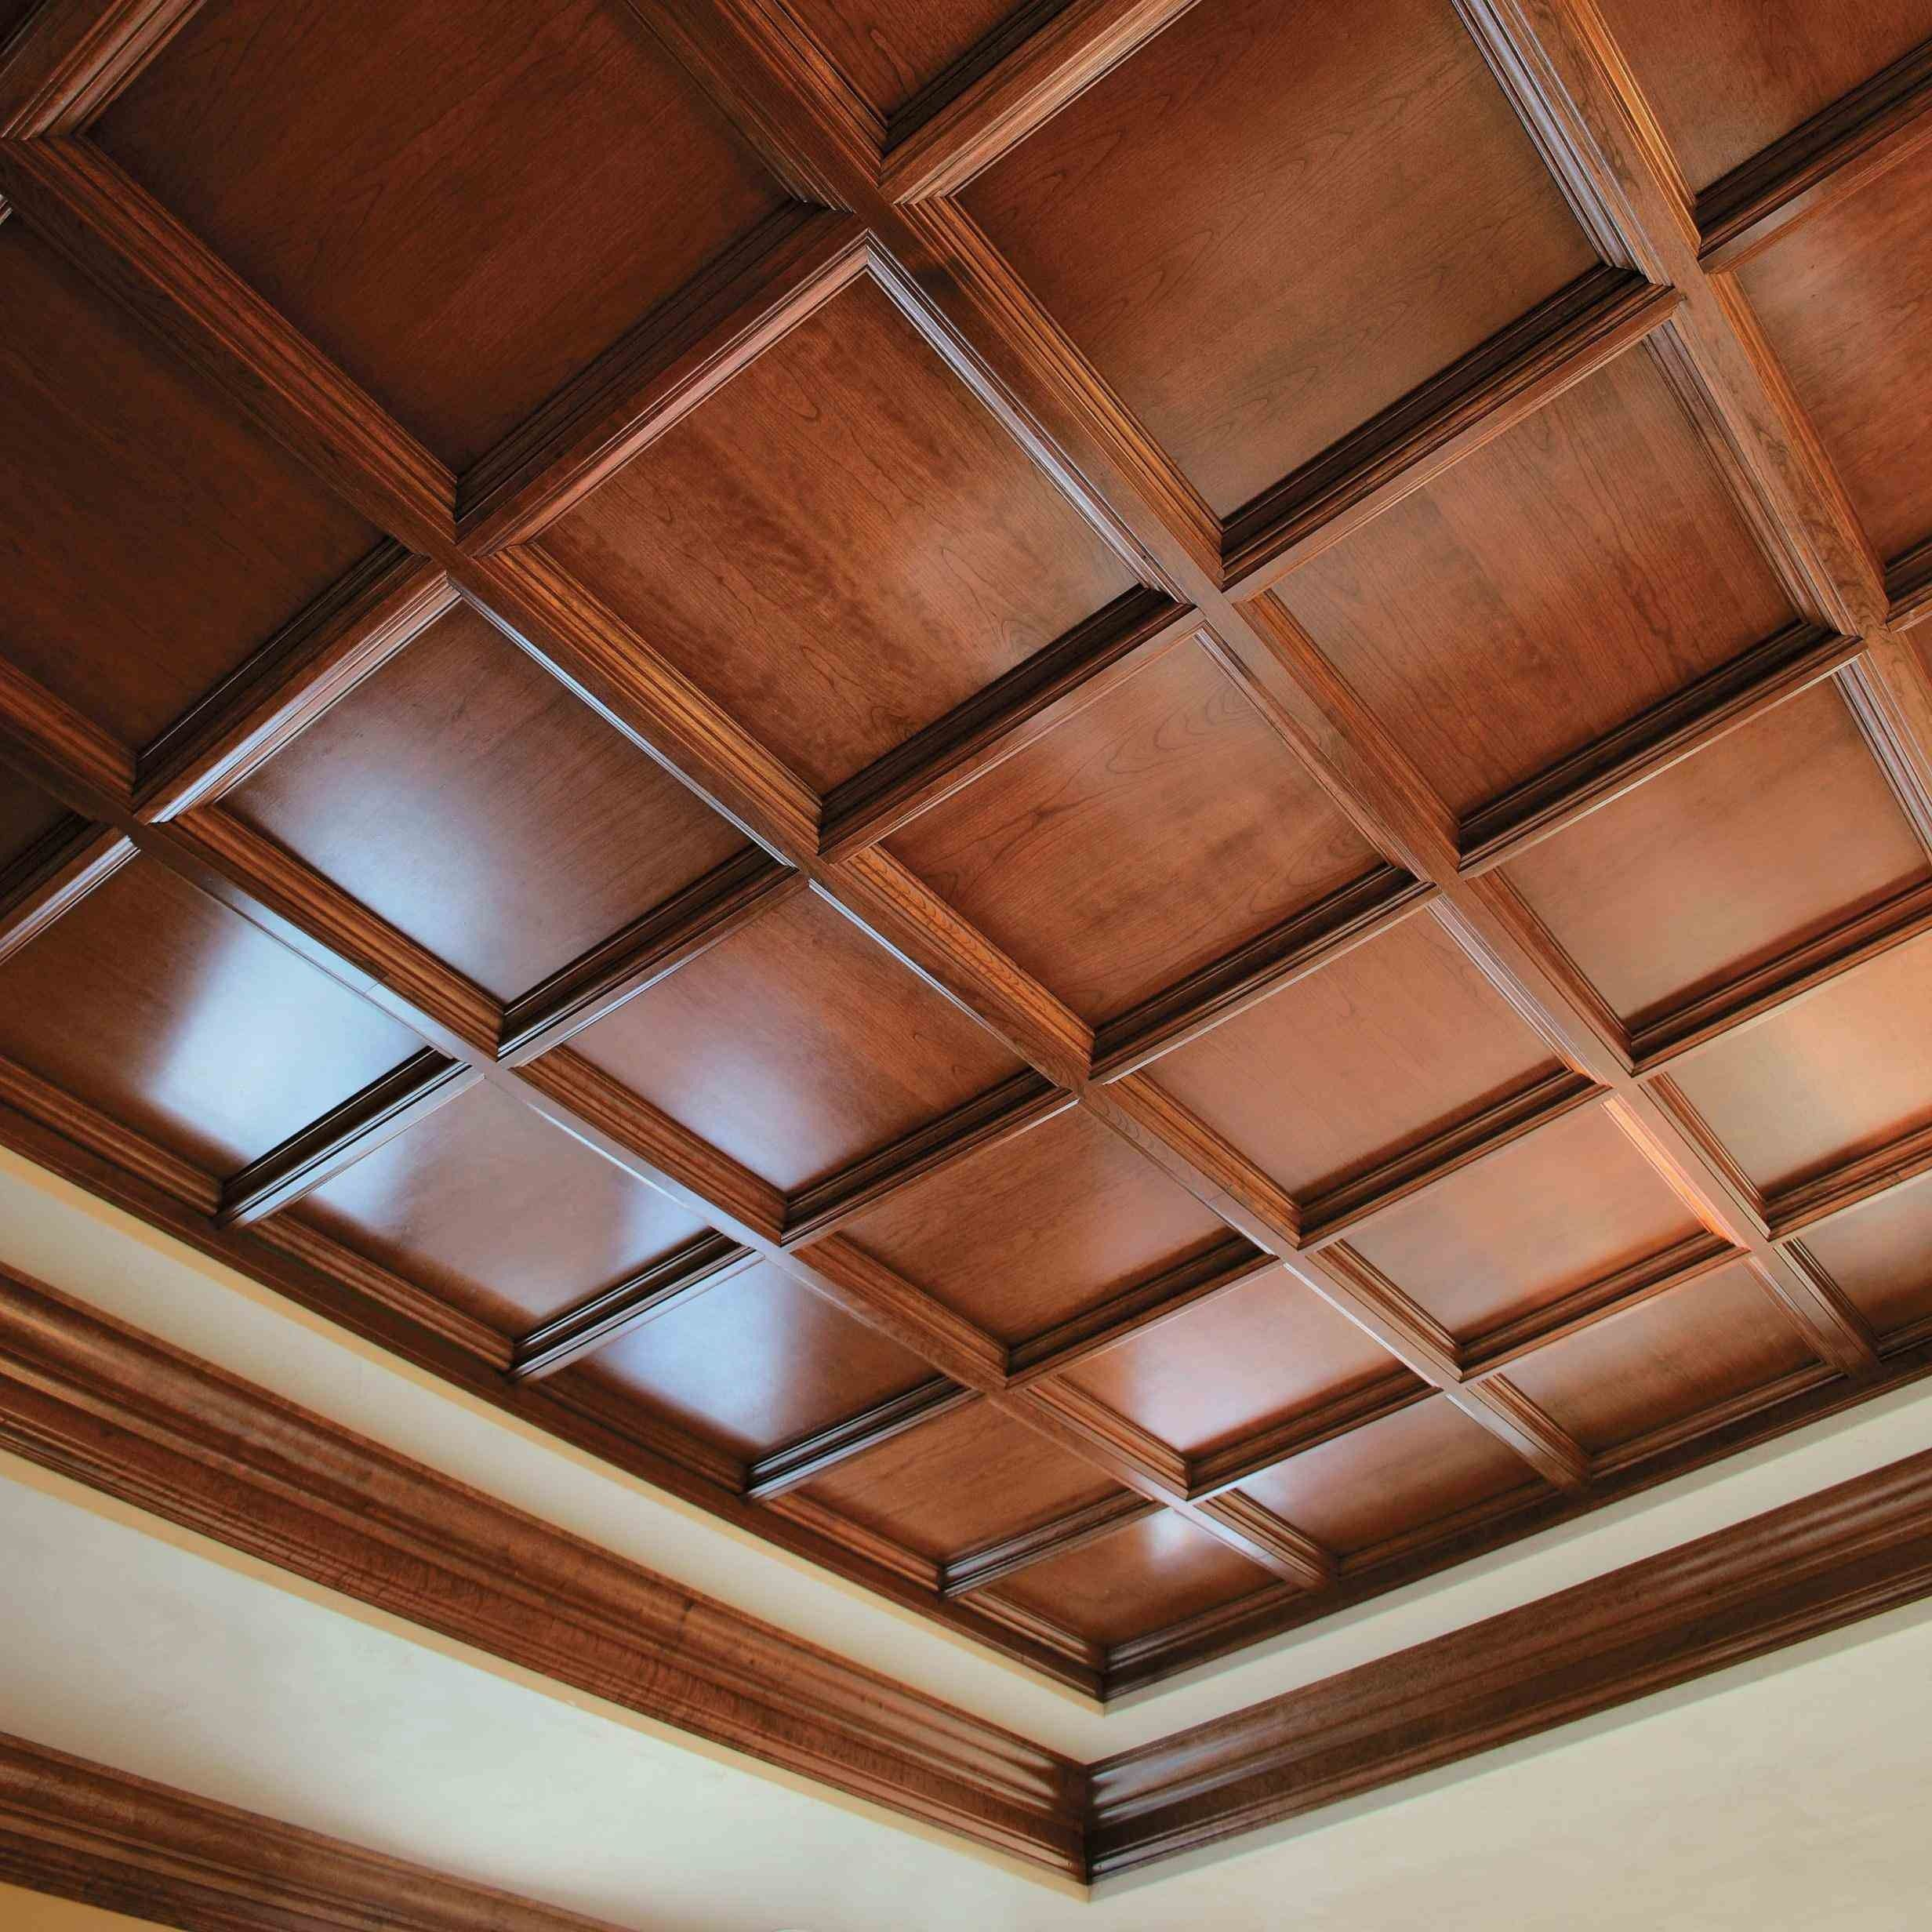 Basement drop ceiling tiles pinteres basement drop ceiling tiles more dailygadgetfo Images